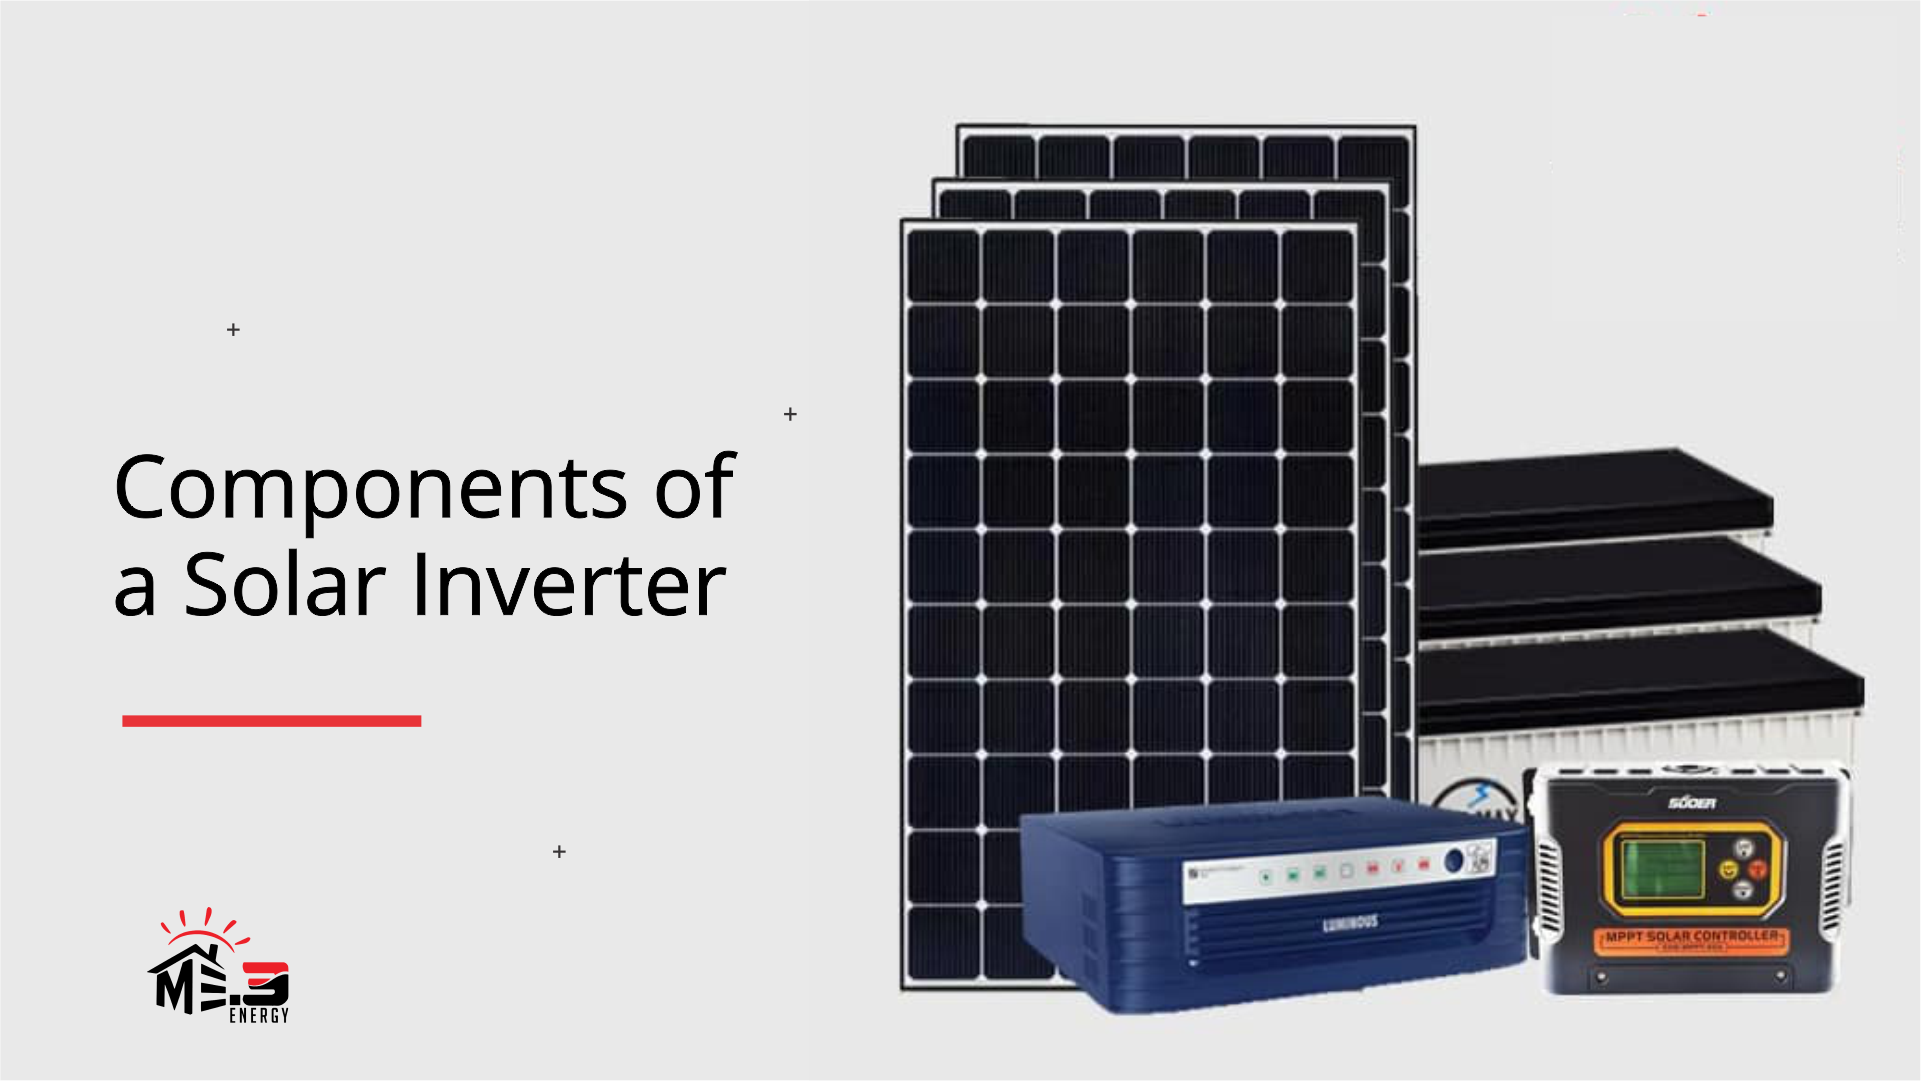 Complete Components of a Solar Inverter